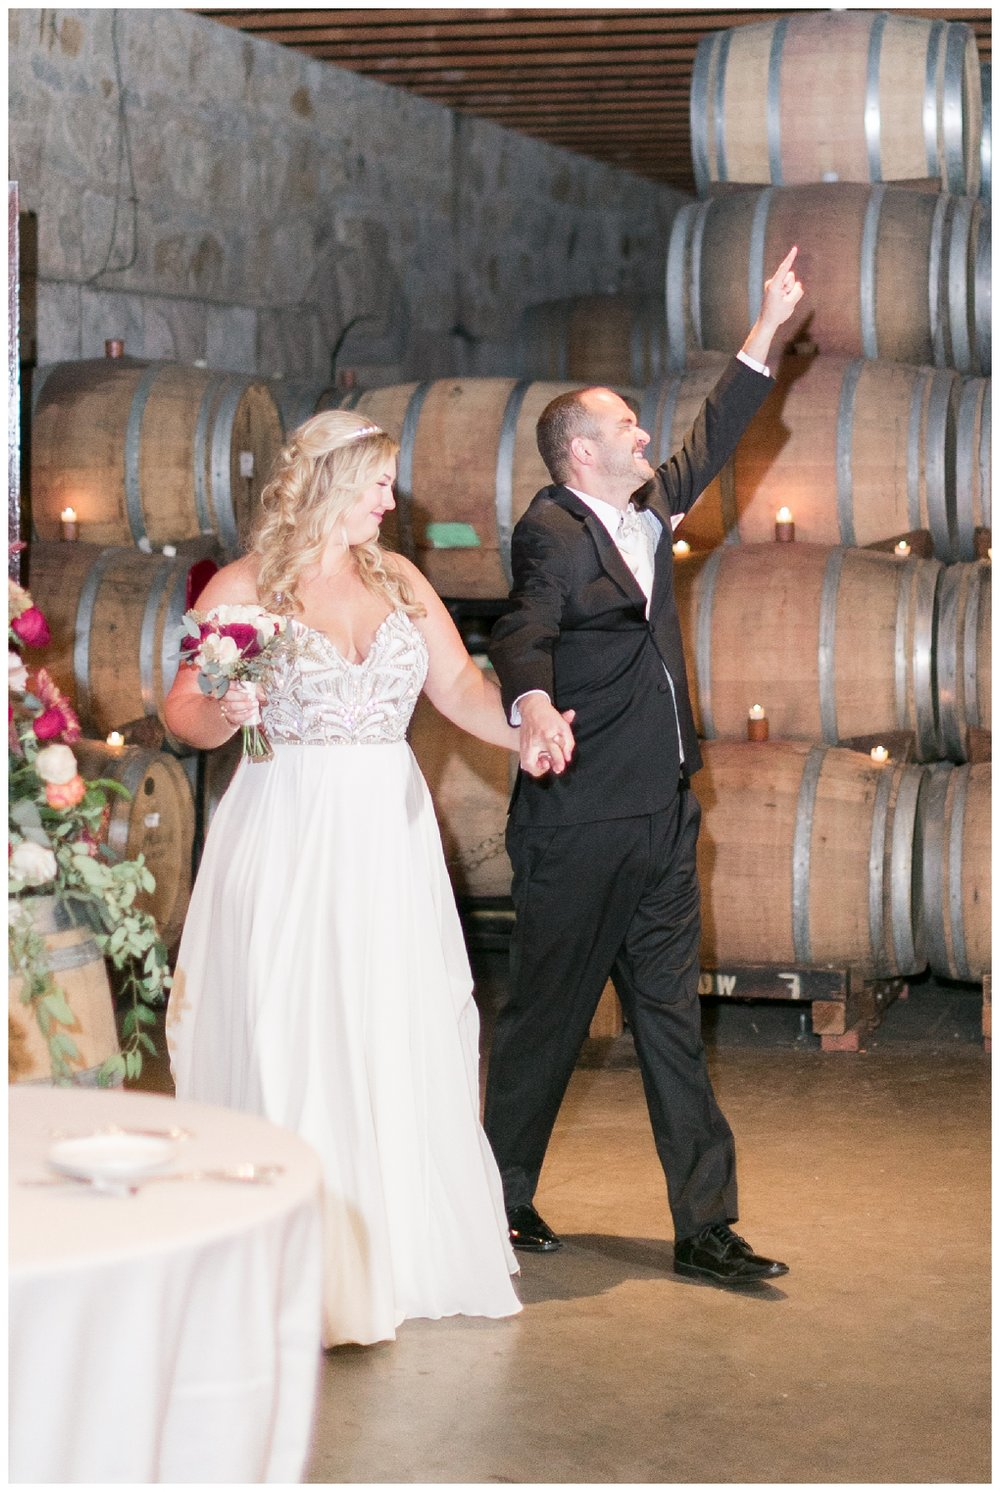 bride and groom enter their indoor wedding reception inside the barrel room at V. Sattui Winery wedding venue in Napa Valley